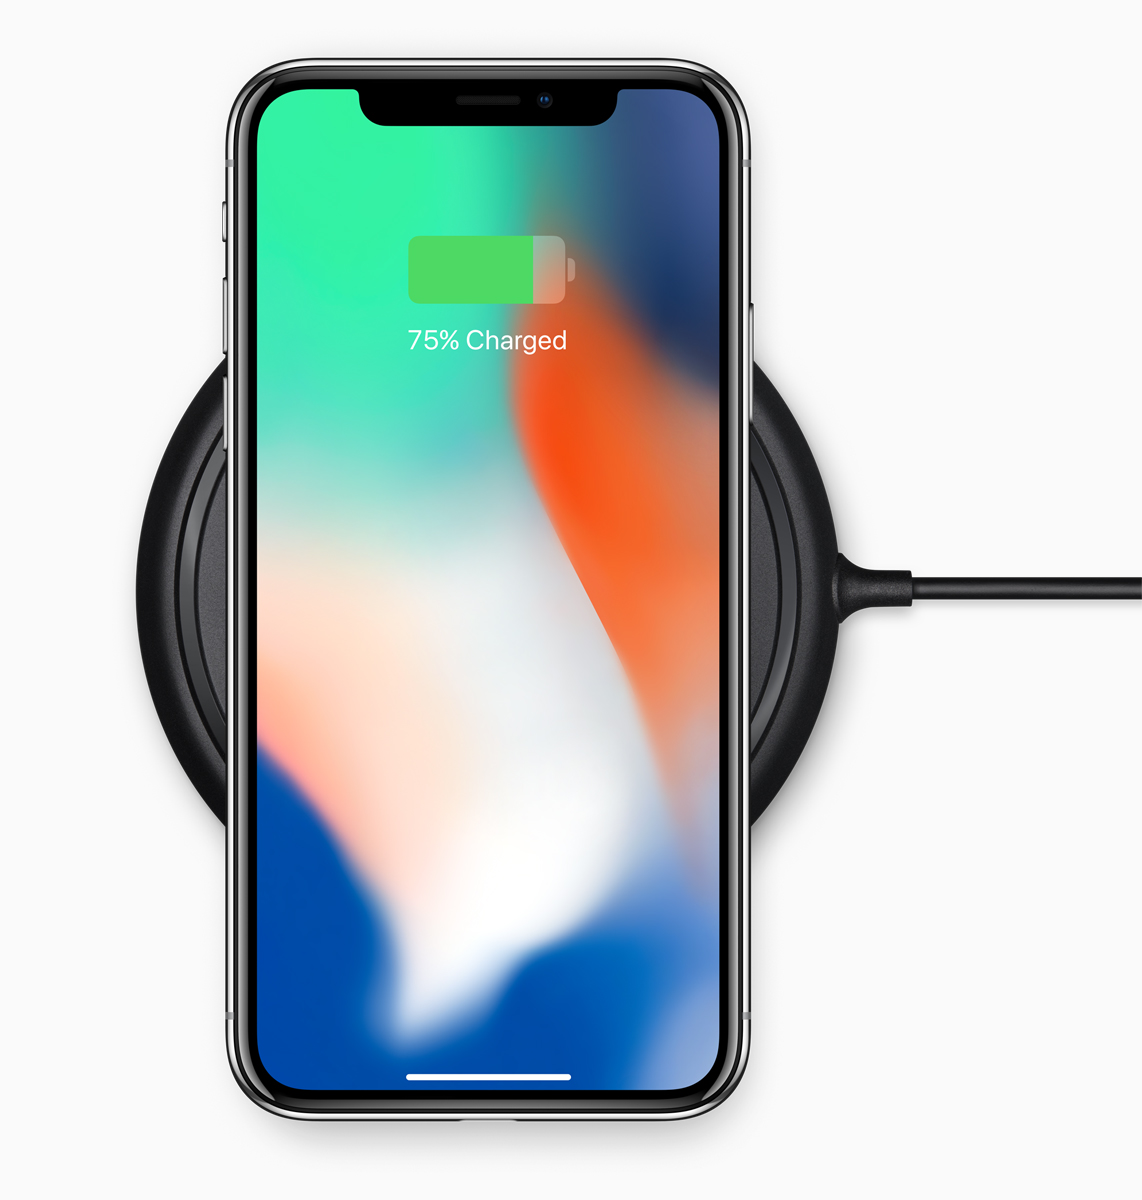 iPhone X Charging, Apple, Cell, Cellphone, Charge, HQ Photo